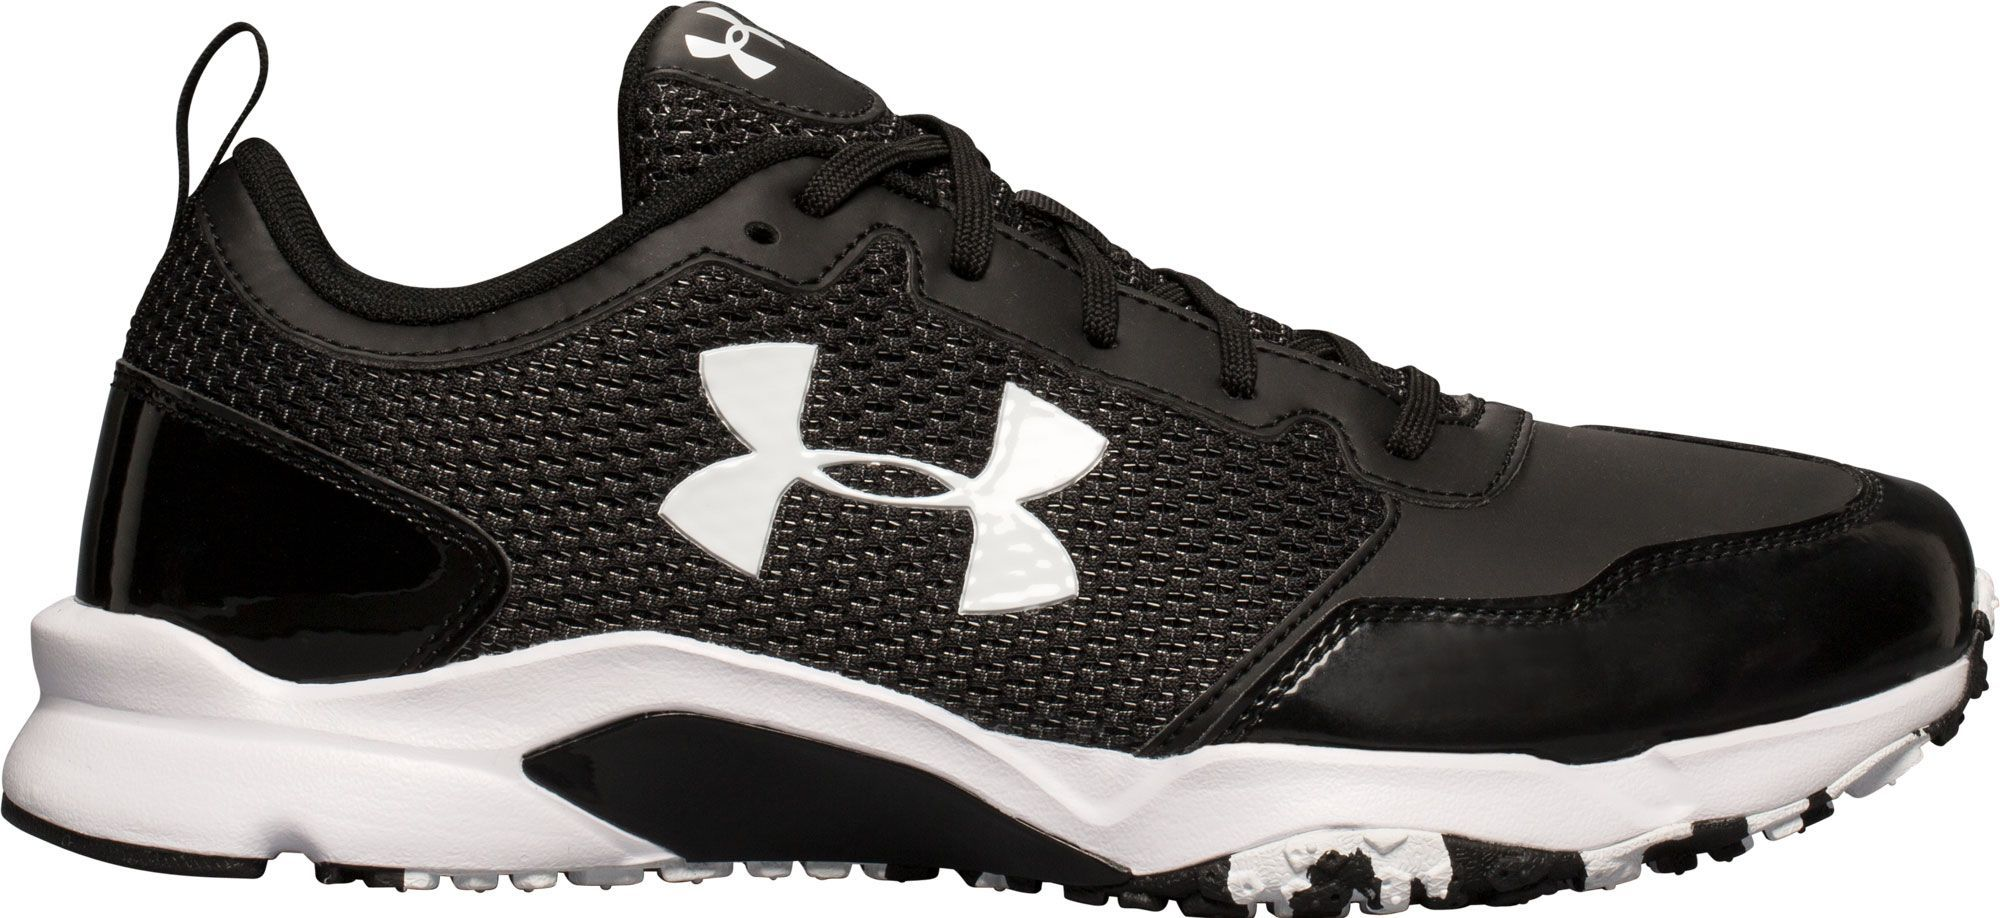 under armour baseball turf shoes Online